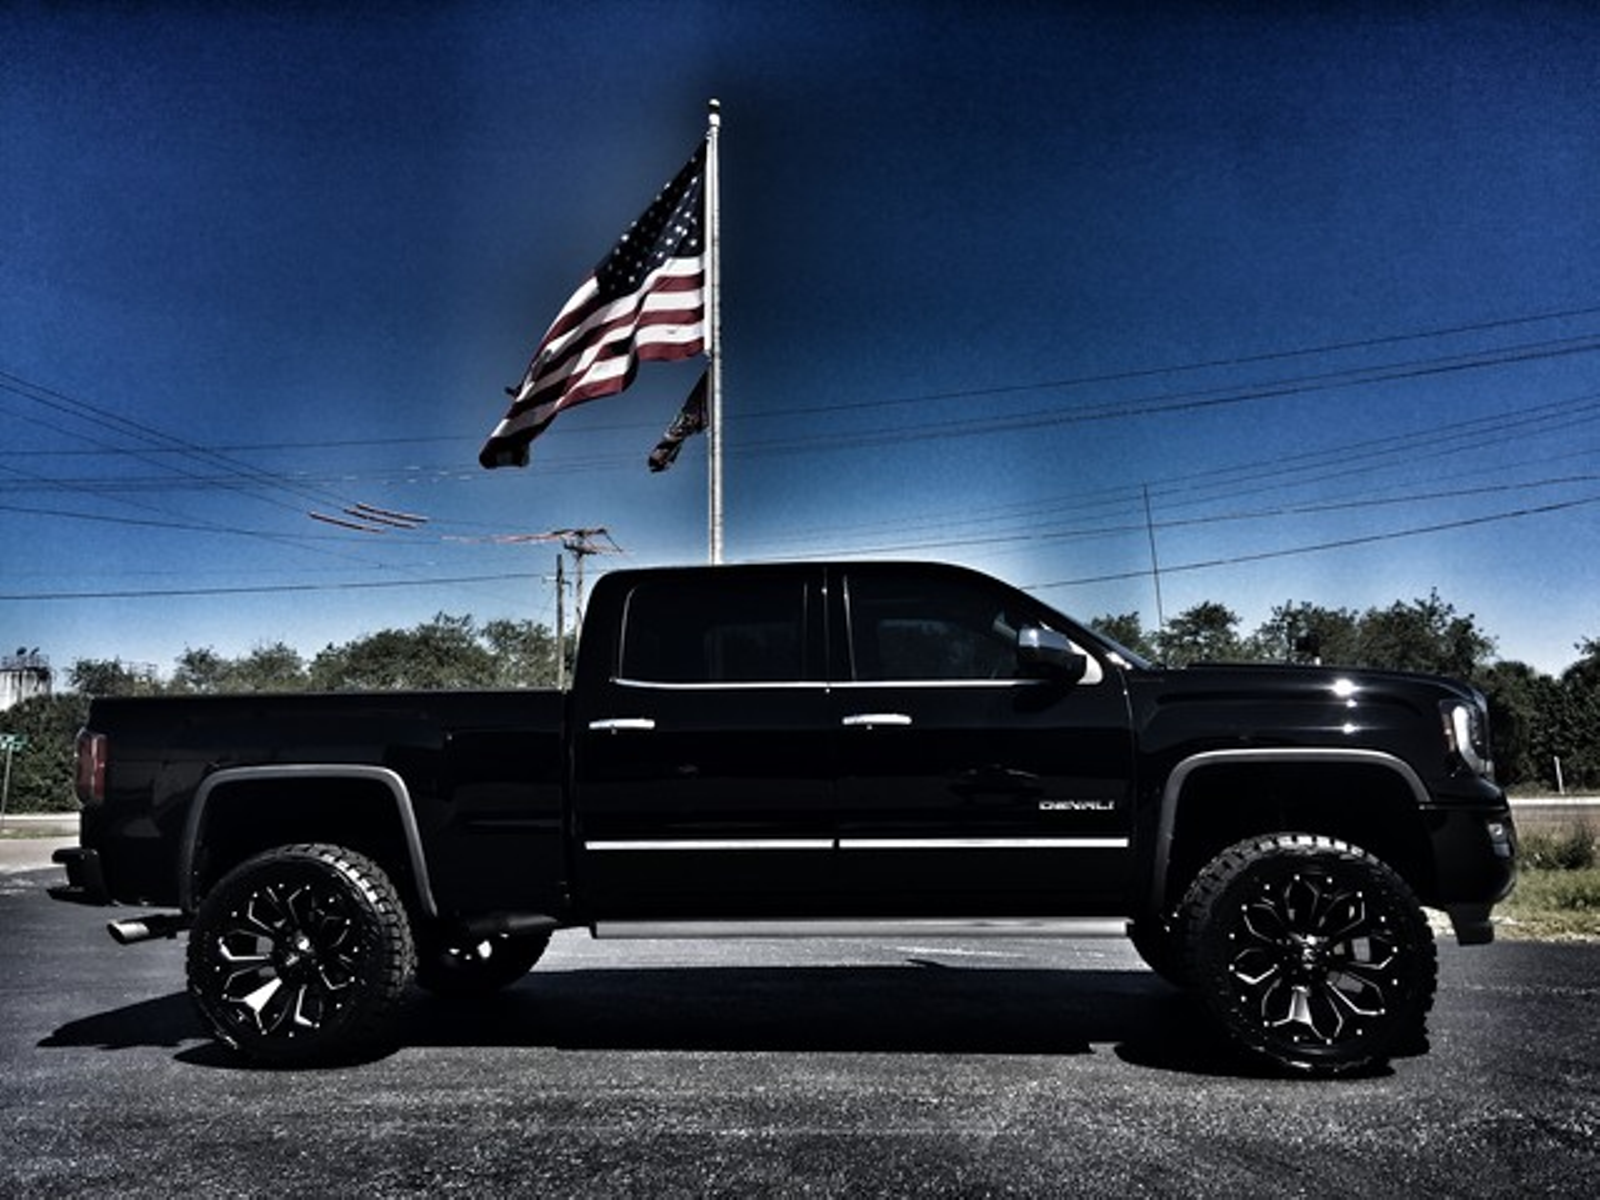 trucks carbon sierra luxury cars best gmc apart set and of to wallpaper inspirational images new bed from fiber looks silverado